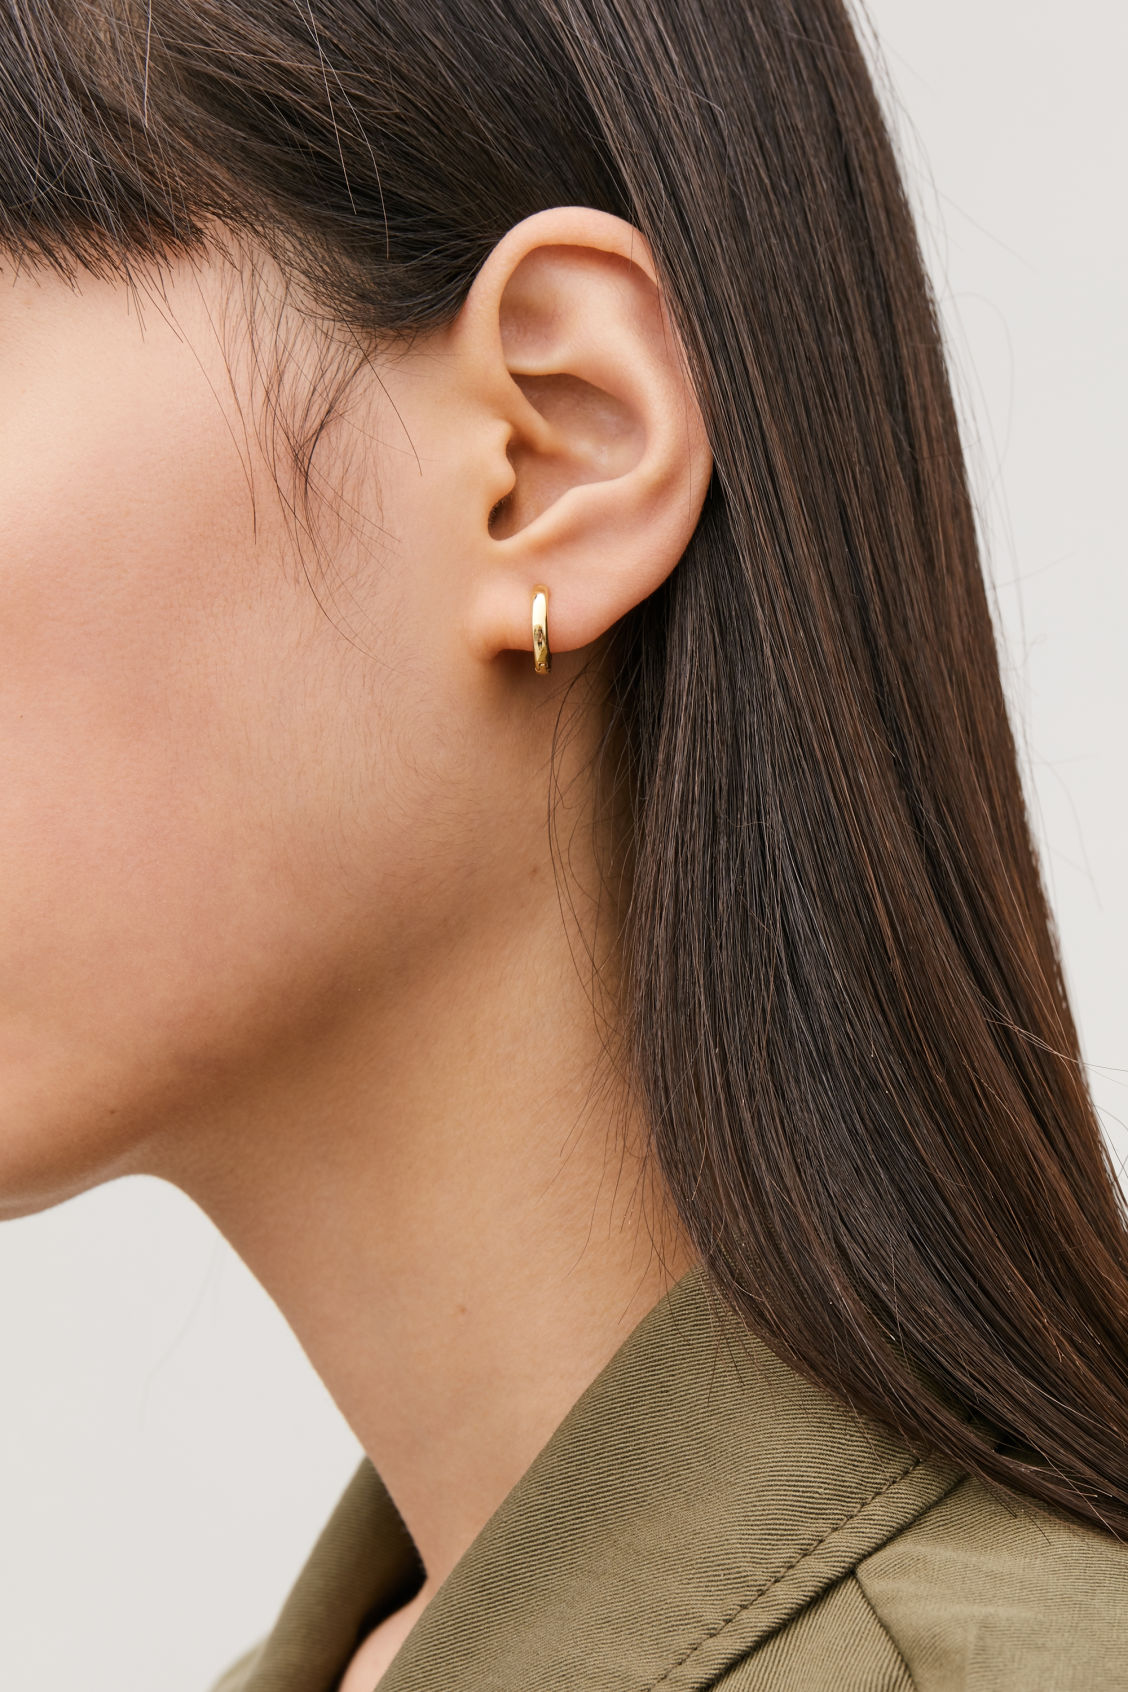 Detailed image of Cos gold-plated micro hoop earrings in gold